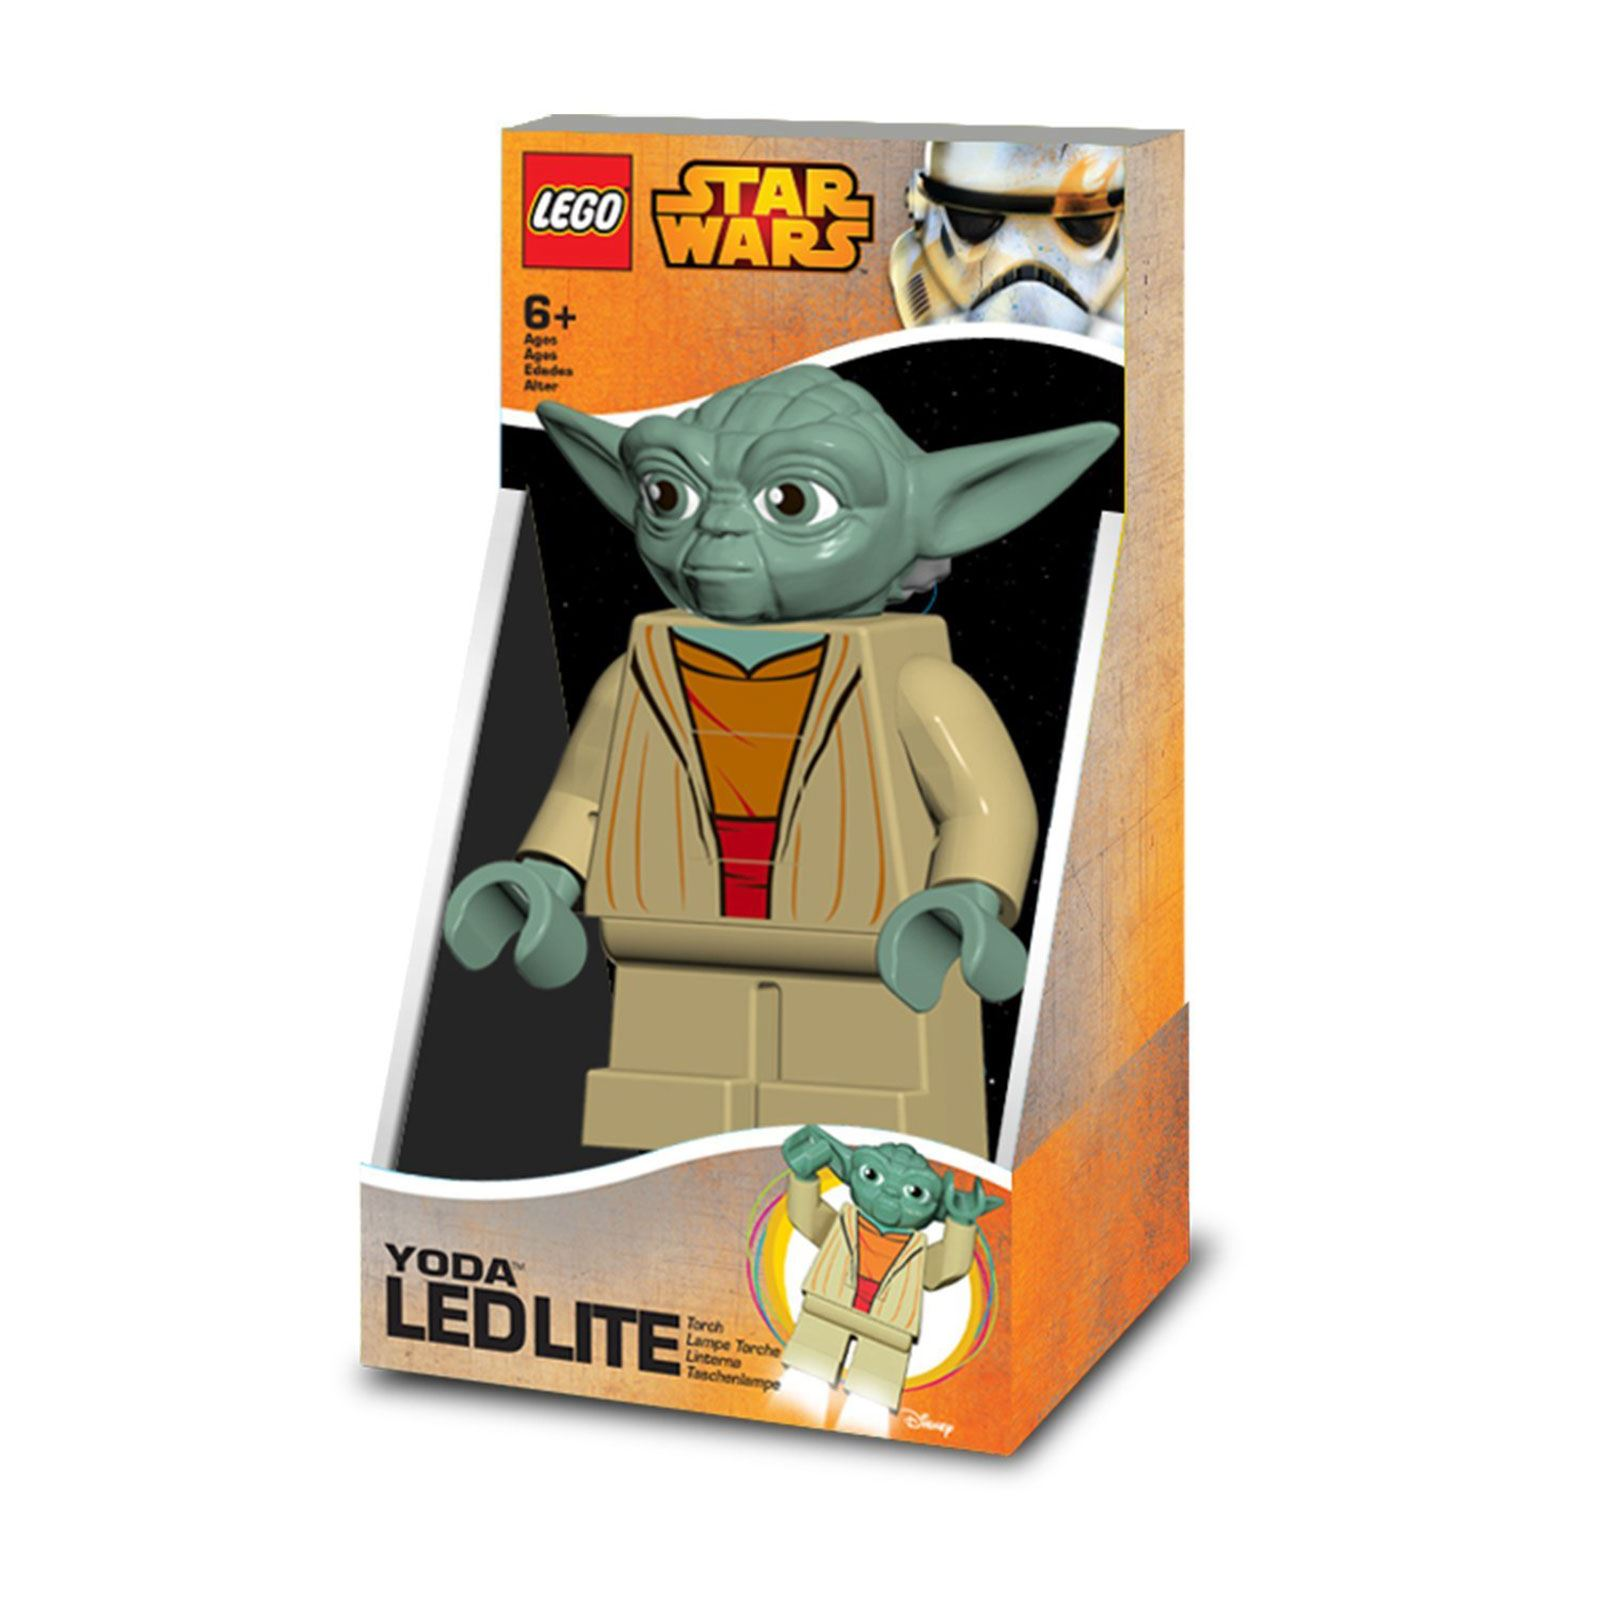 lego star wars yoda led lite torch kids lighting 100 official